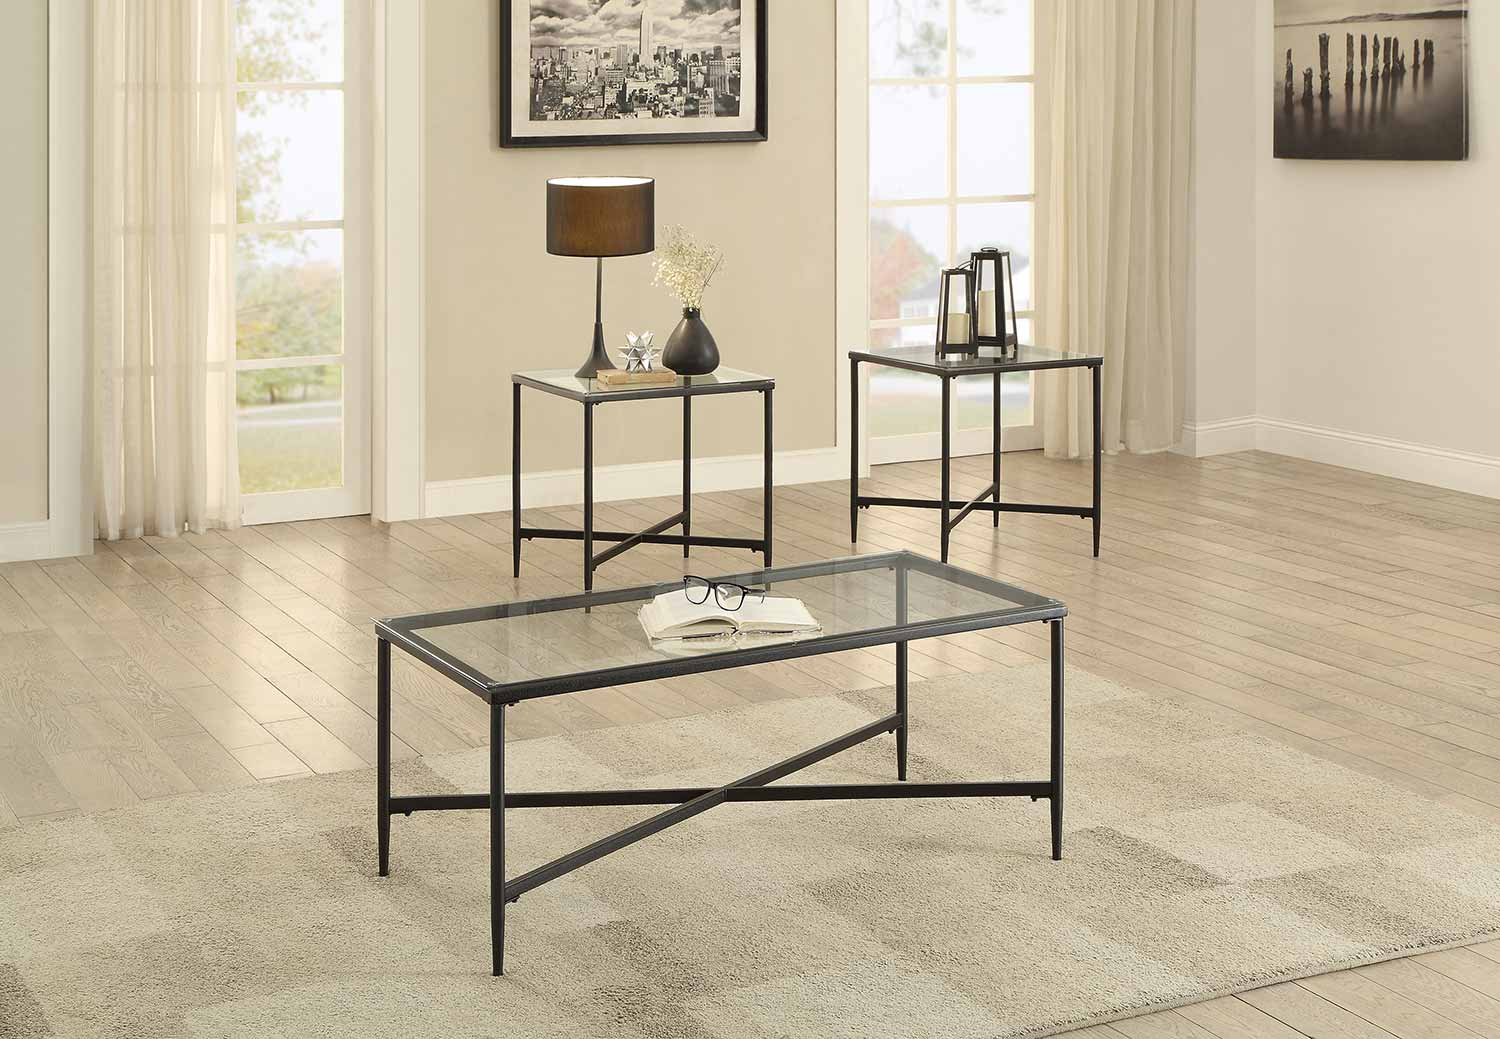 Homelegance Olas 3-Piece Occasional Tables with Glass Top